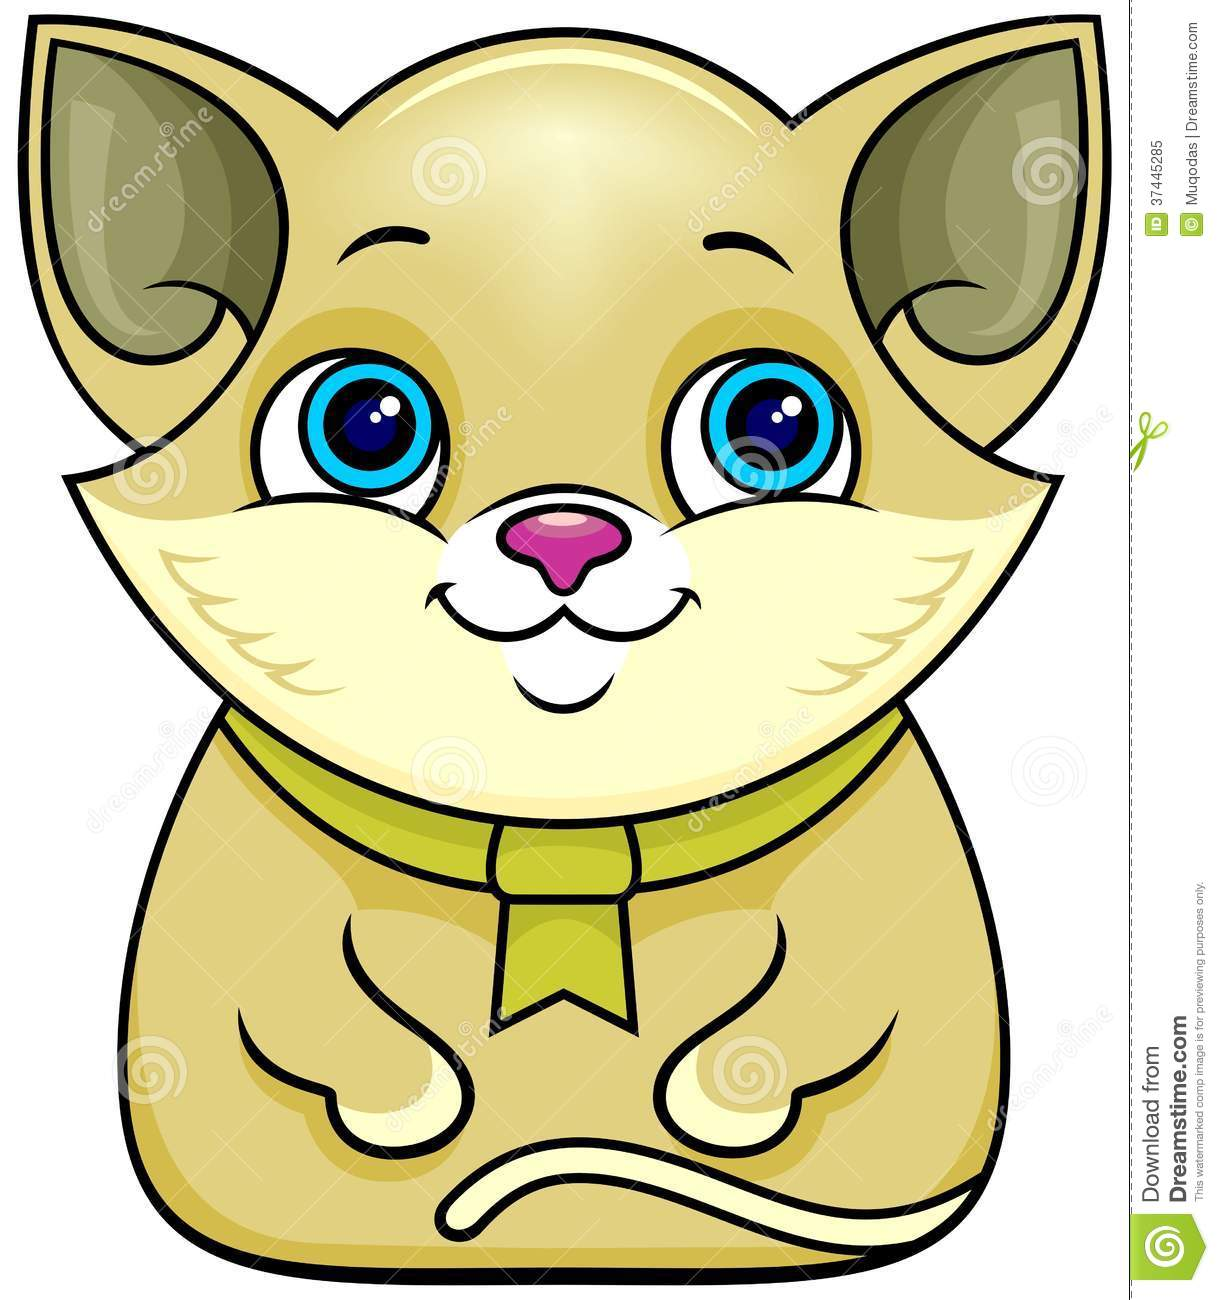 Cartoon cat stock vector. Image of animal, hilarious ...